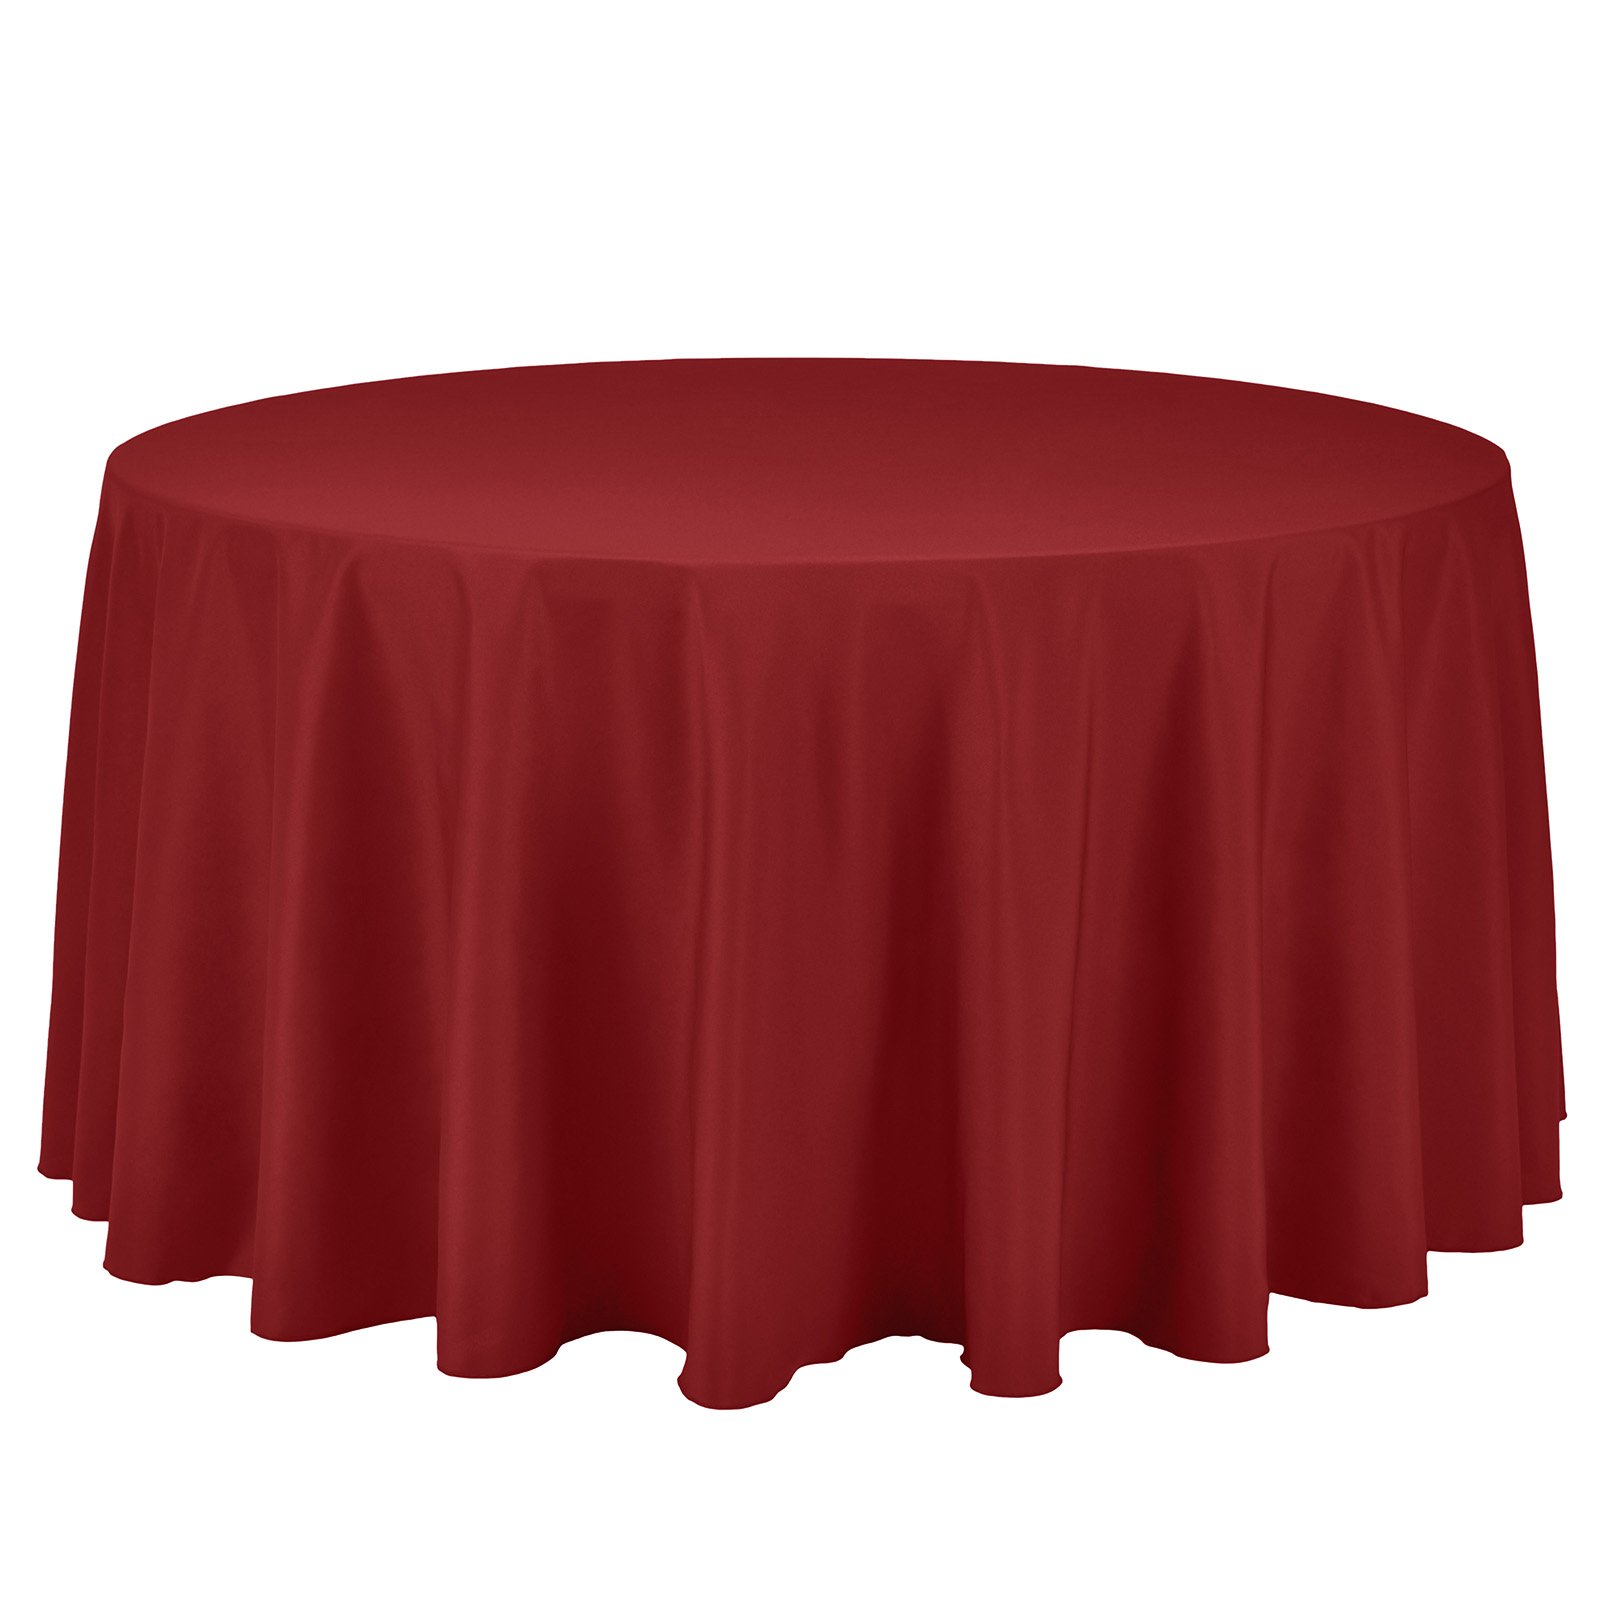 Remedios Round Tablecloth Solid Color Polyester Table Cloth for Bridal Shower Wedding Table – Wrinkle Free Dinner Tablecloth for Restaurant Party Banquet (Red, 120 inch)